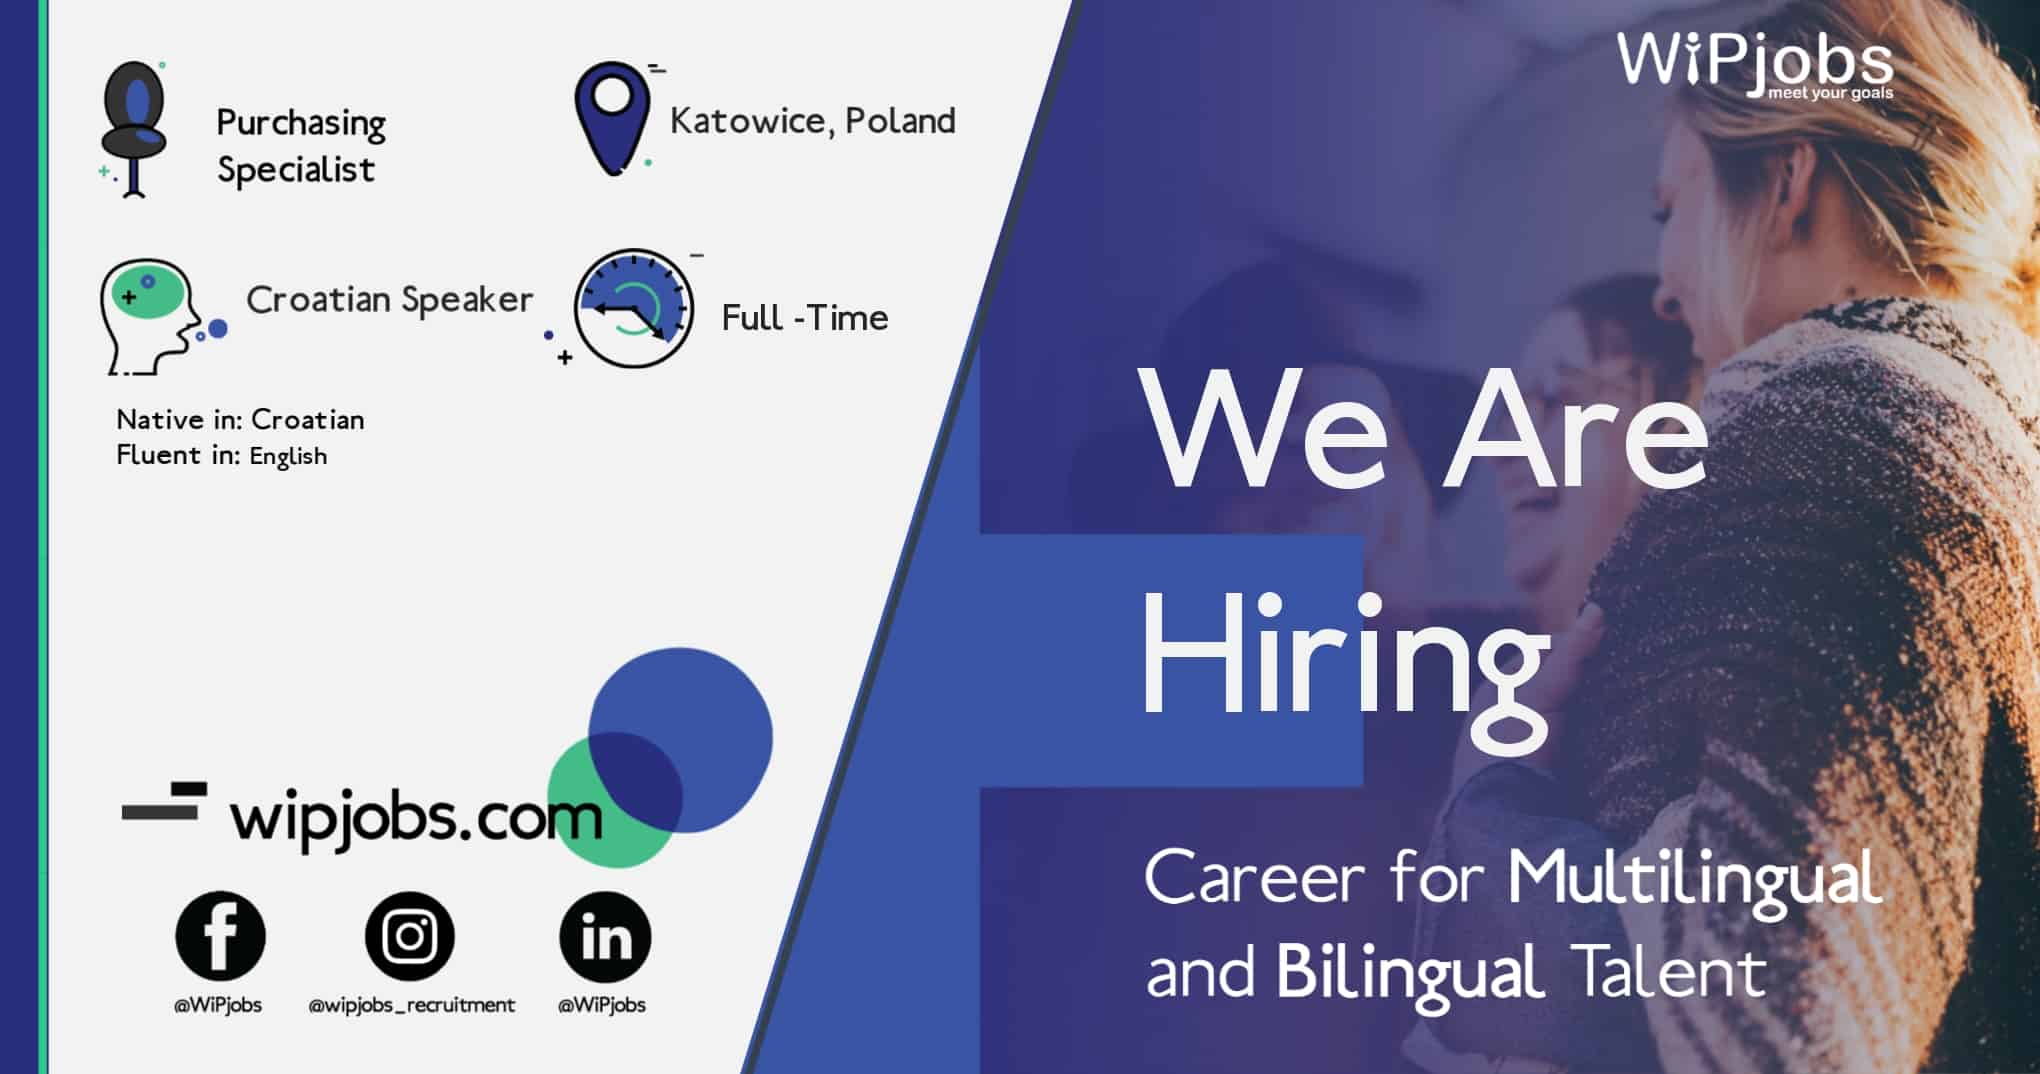 Purchasing-Specialist-CROATIAN-Speaker